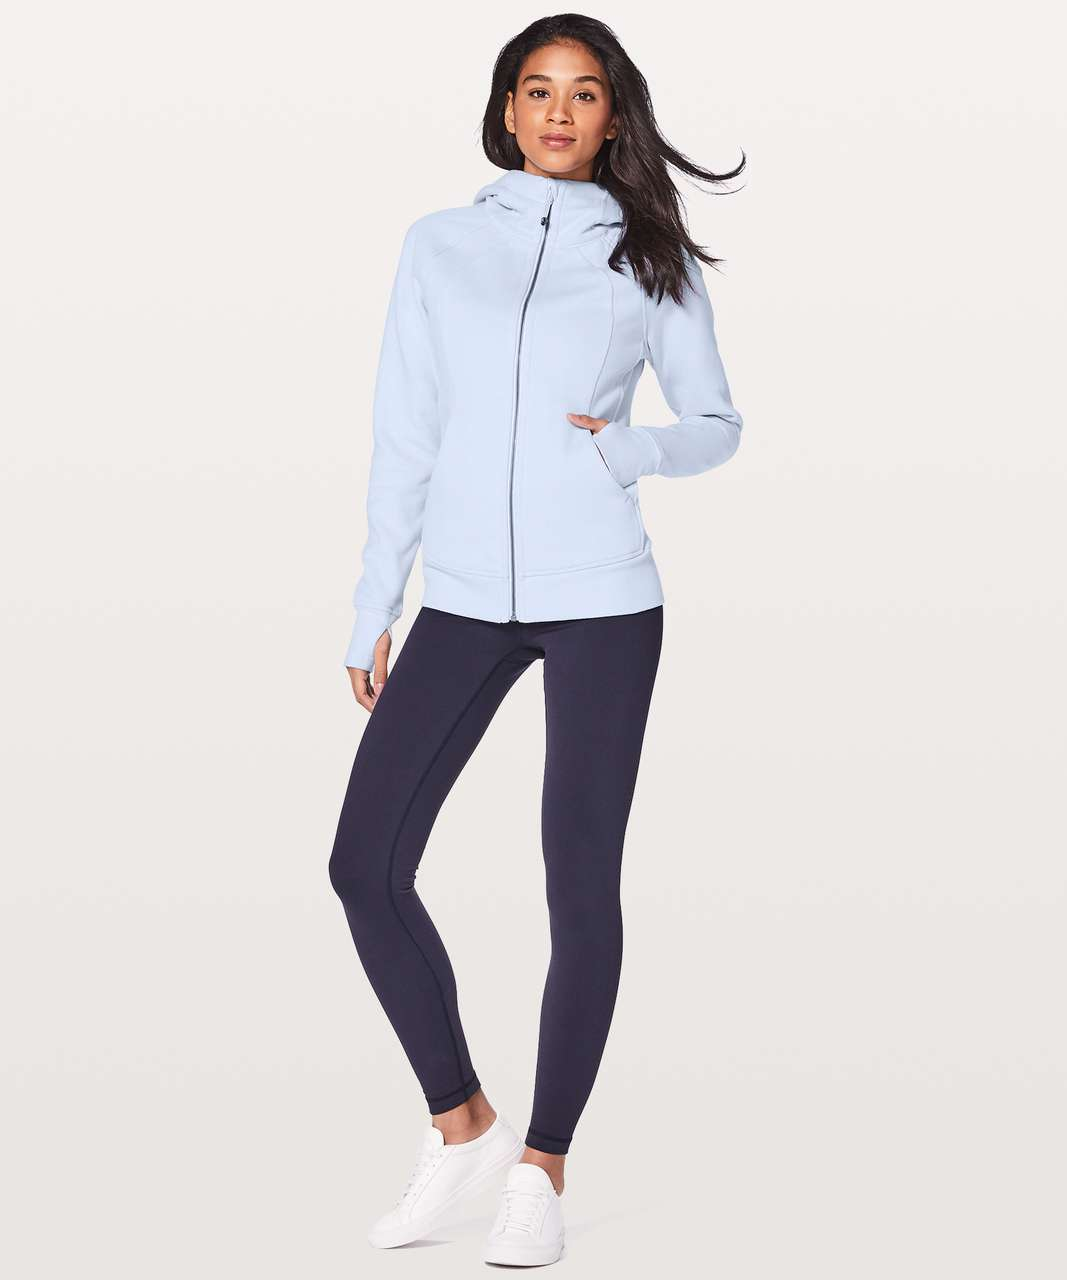 Lululemon Scuba Hoodie *Light Cotton Fleece - Serene Blue